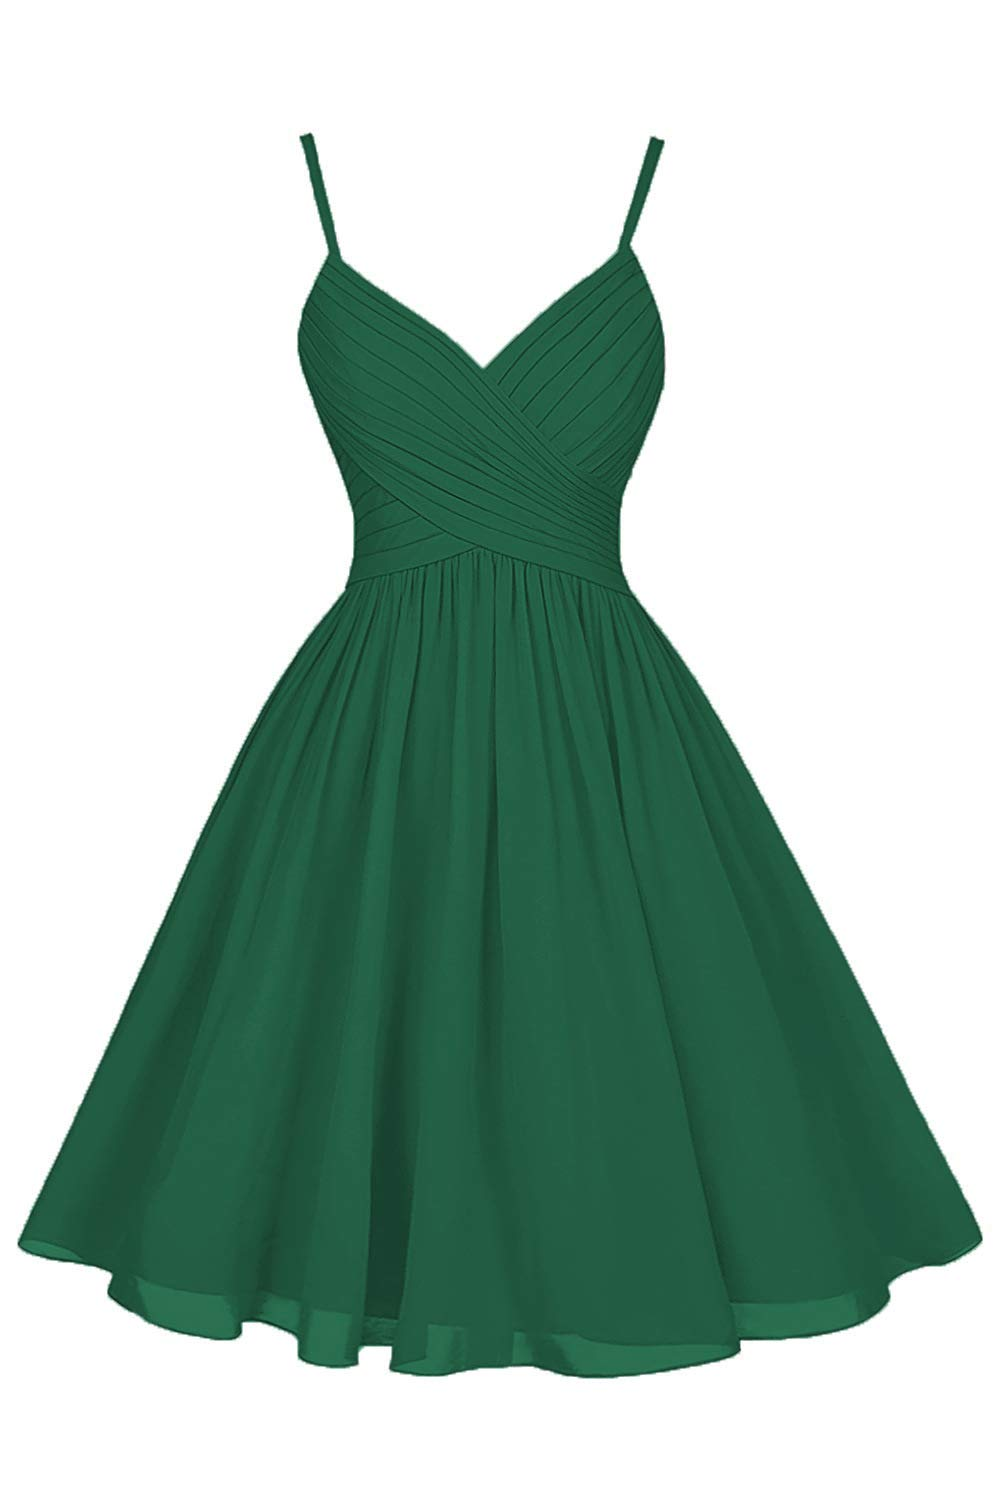 Emerald Cocktail Dresses The Dress Shop